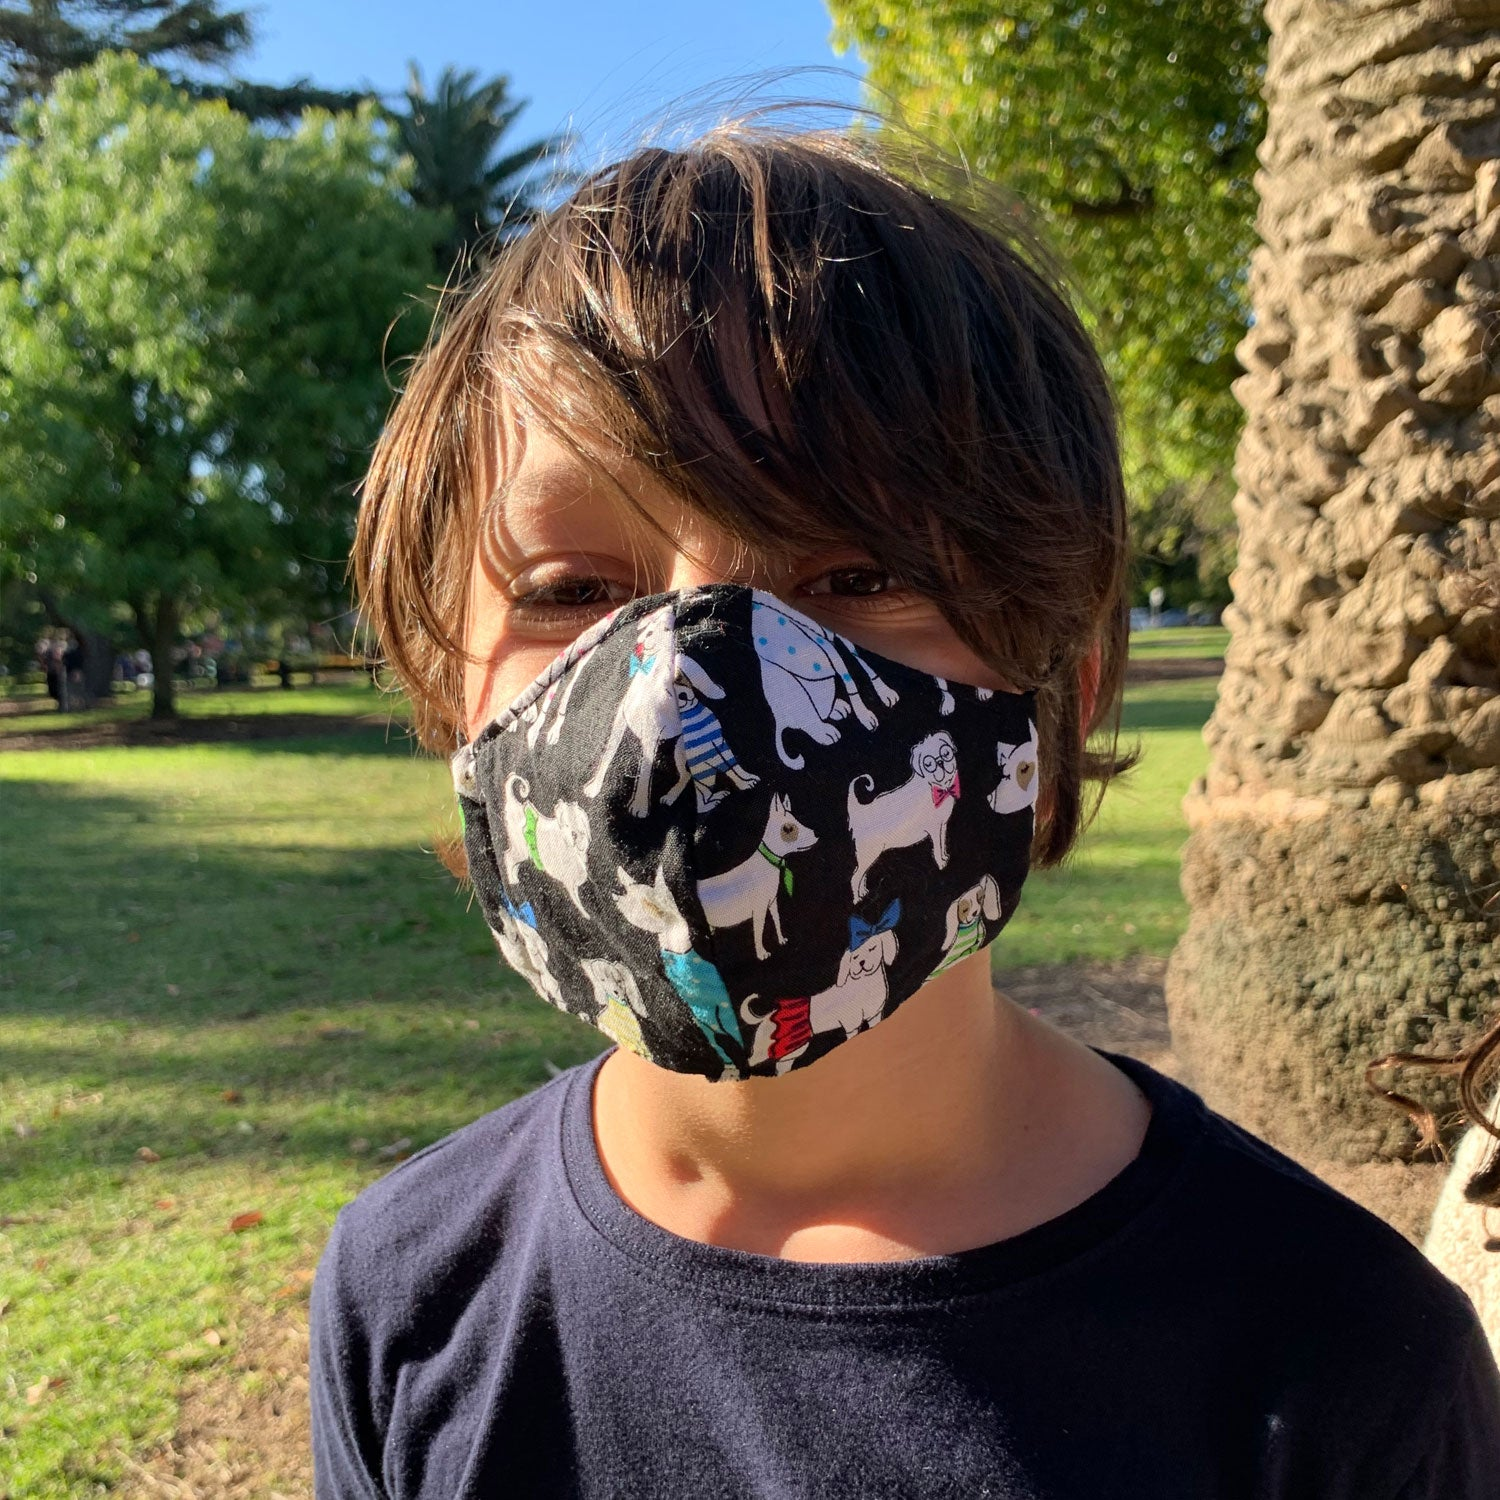 Triple layered kids face mask made in Melbourne Australia from cotton and poplin featuring a fun fox print